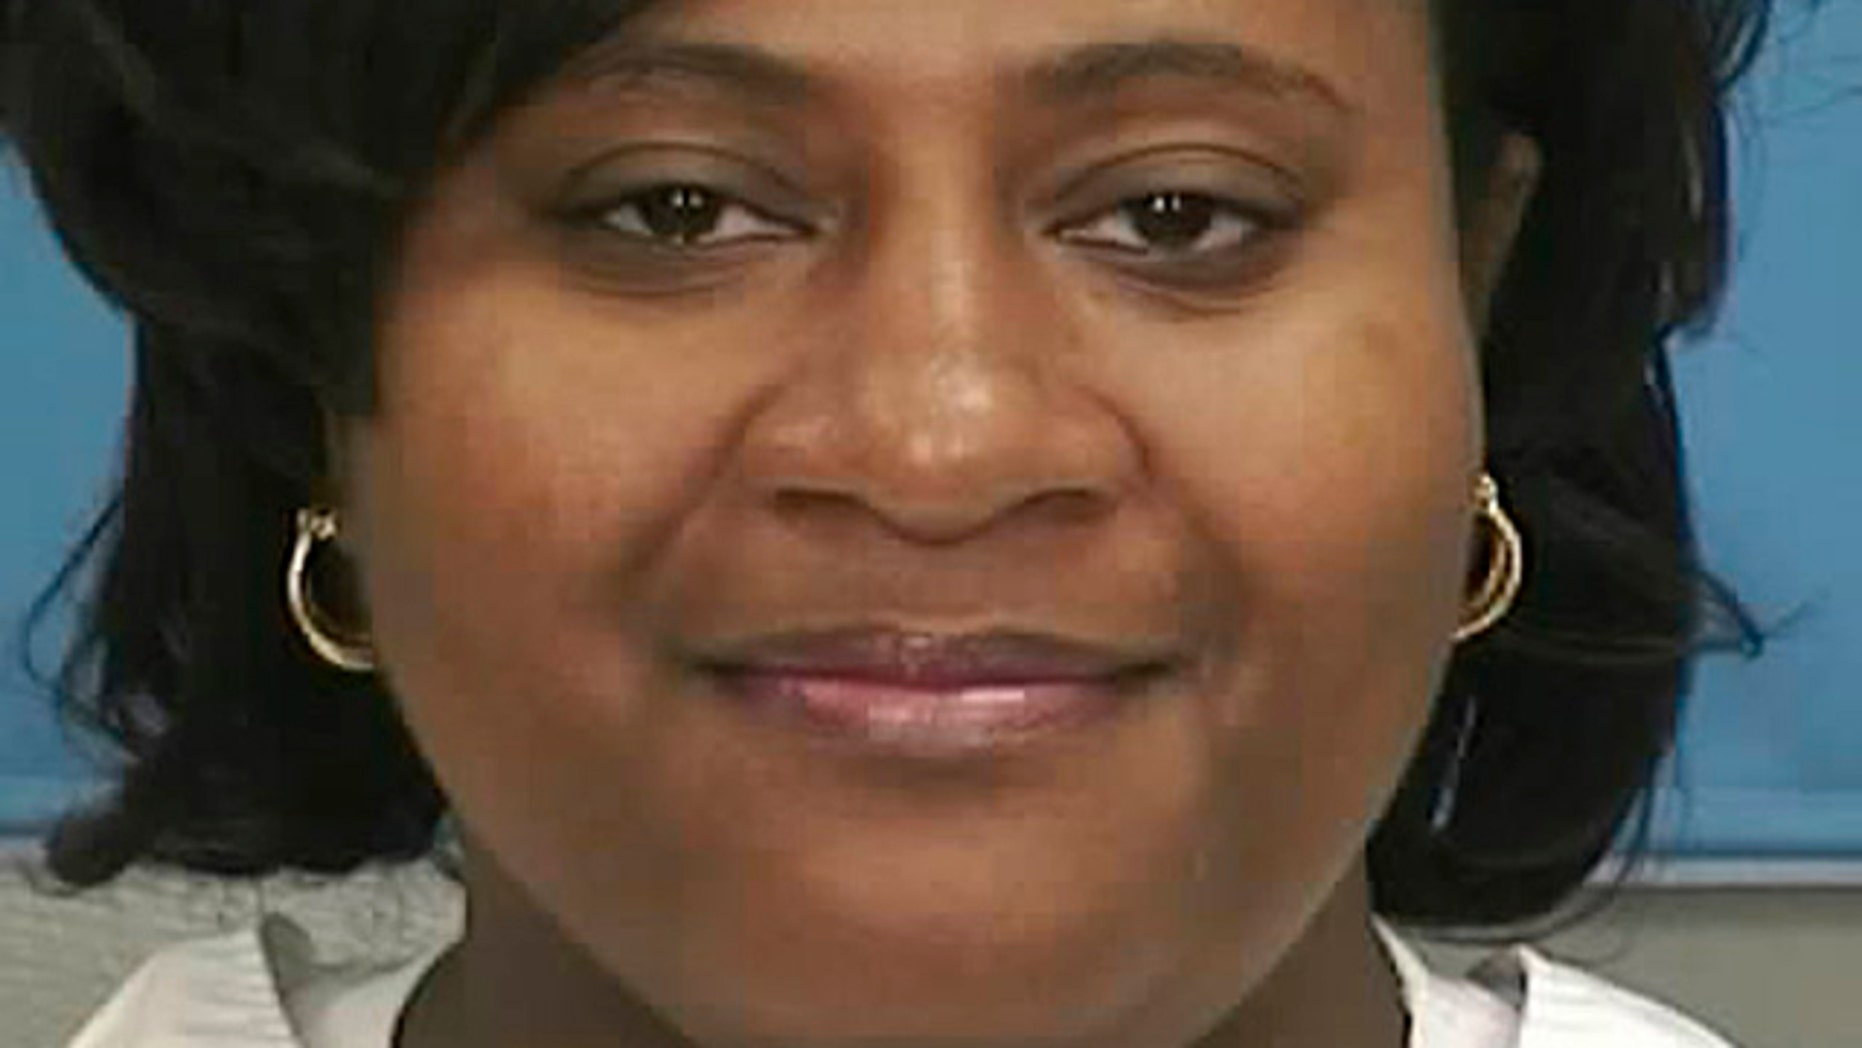 Aug. 21, 2010: This photo released by the Mississippi Department of Corrections shows Jamie Scott, who, along with her sister Gladys Scott, had their life sentences for a 1993 robbery suspended Wednesday by Mississippi Gov. Haley Barbour. Jamie and Gladys Scott were freed from a state prison just east of Jackson, Miss., on Friday as part of a deal to suspend their life sentences for armed robbery. (AP)